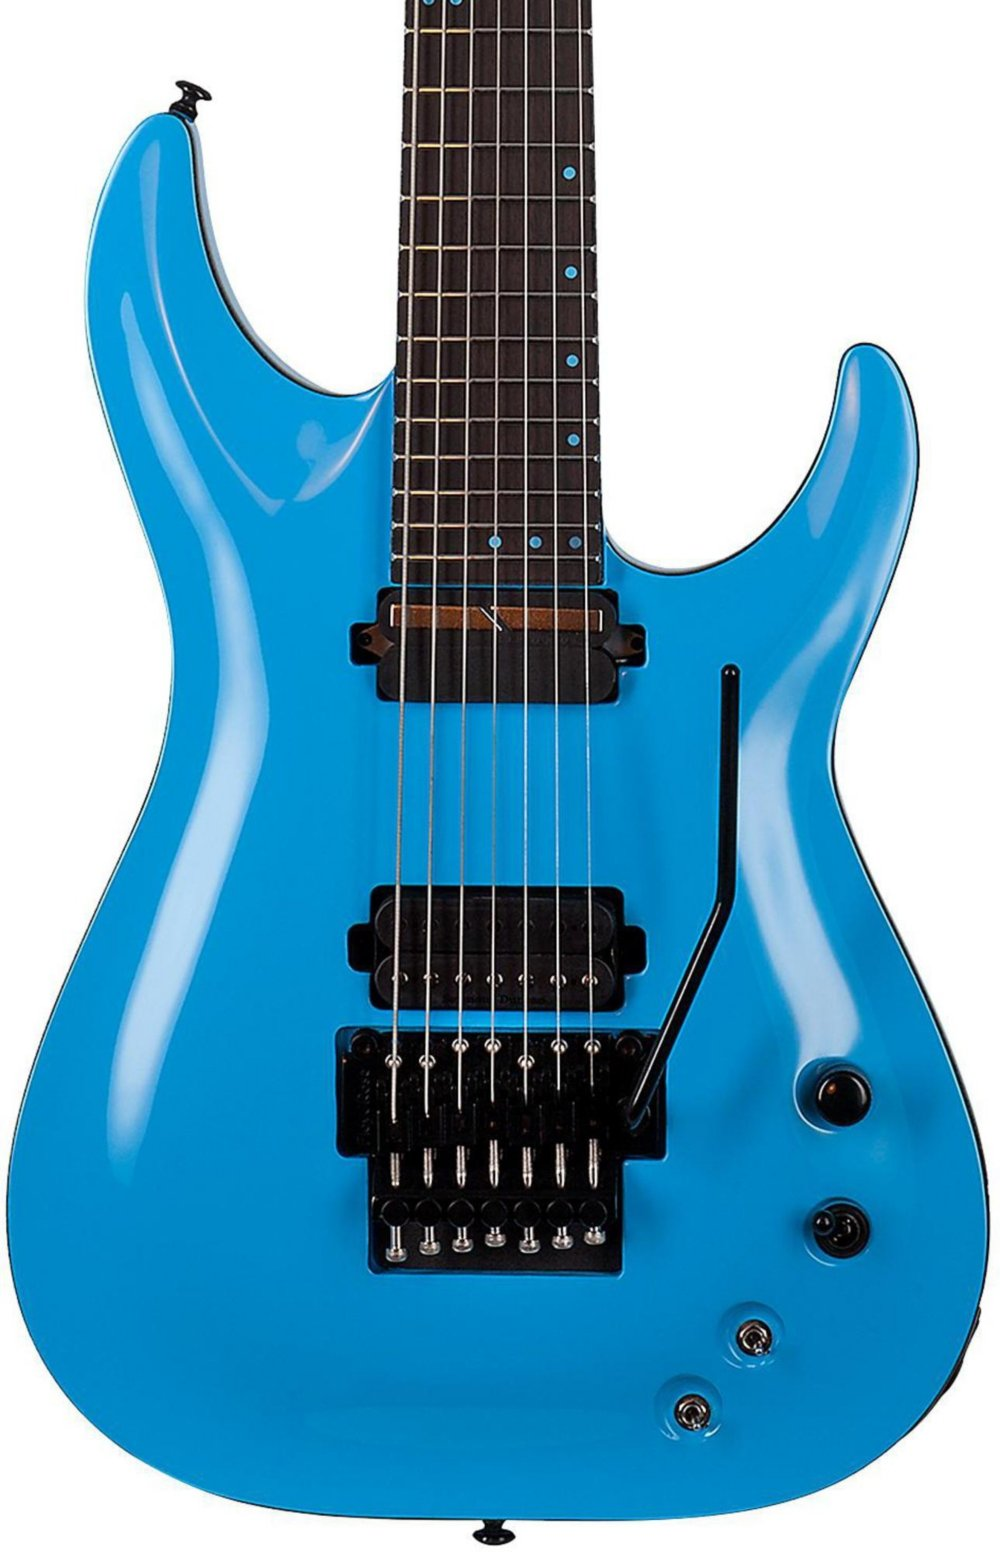 Cheap Schecter Guitar Research KM-7 FR-S Electric Guitar Blue Black Friday & Cyber Monday 2019